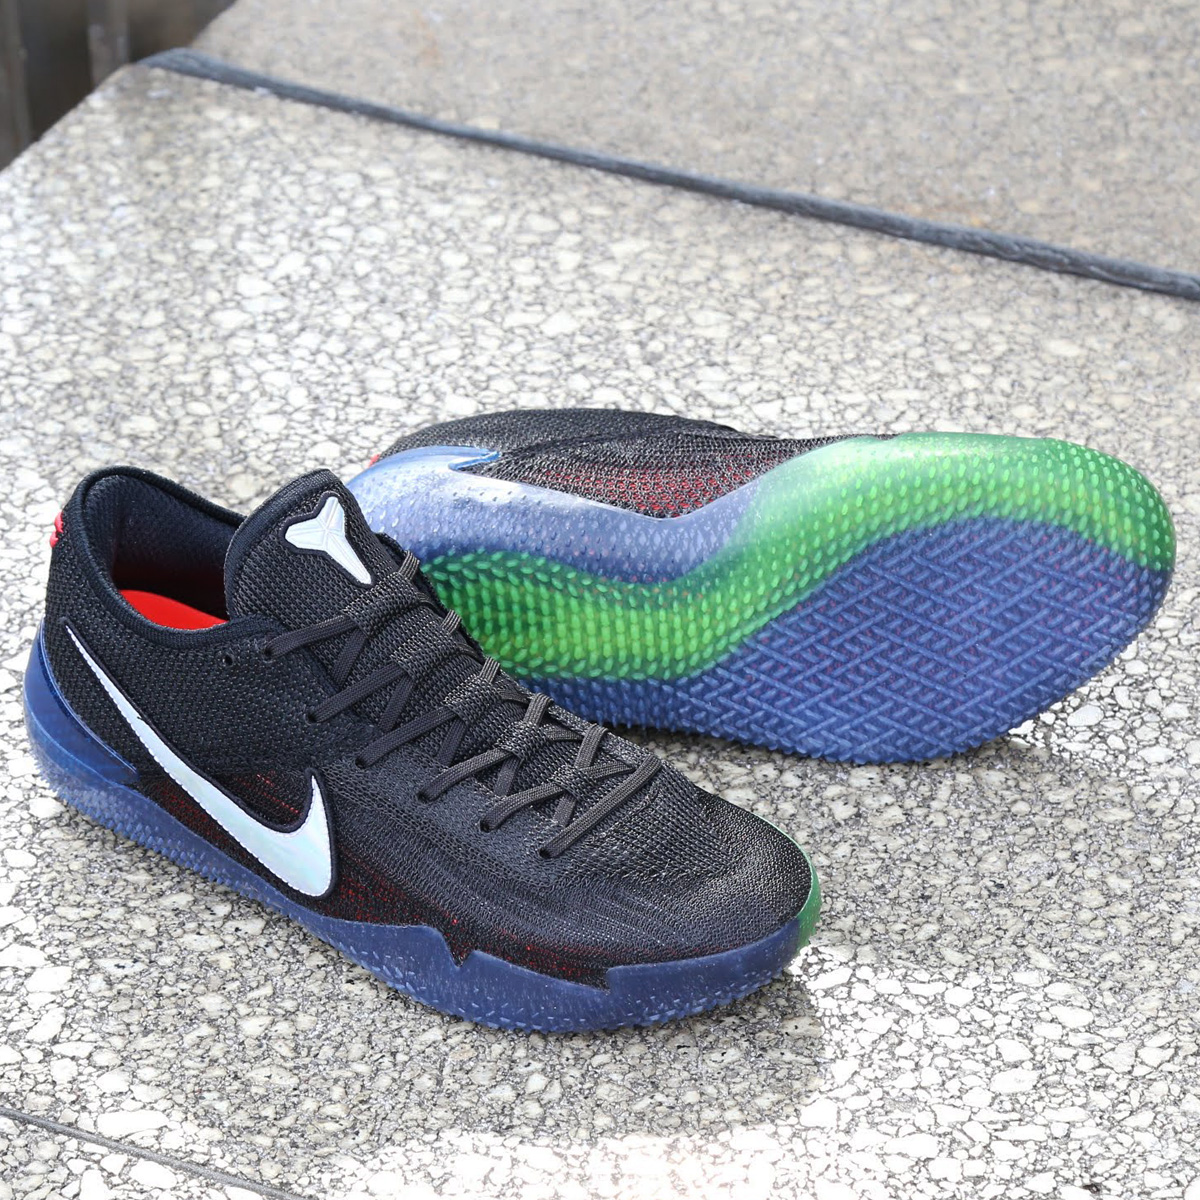 newest 28fd0 6a7c3 NIKE KOBE AD NXT 360 (Nike Corby AD NXT 360) BLACKMULTI-COLOR 18SU-S